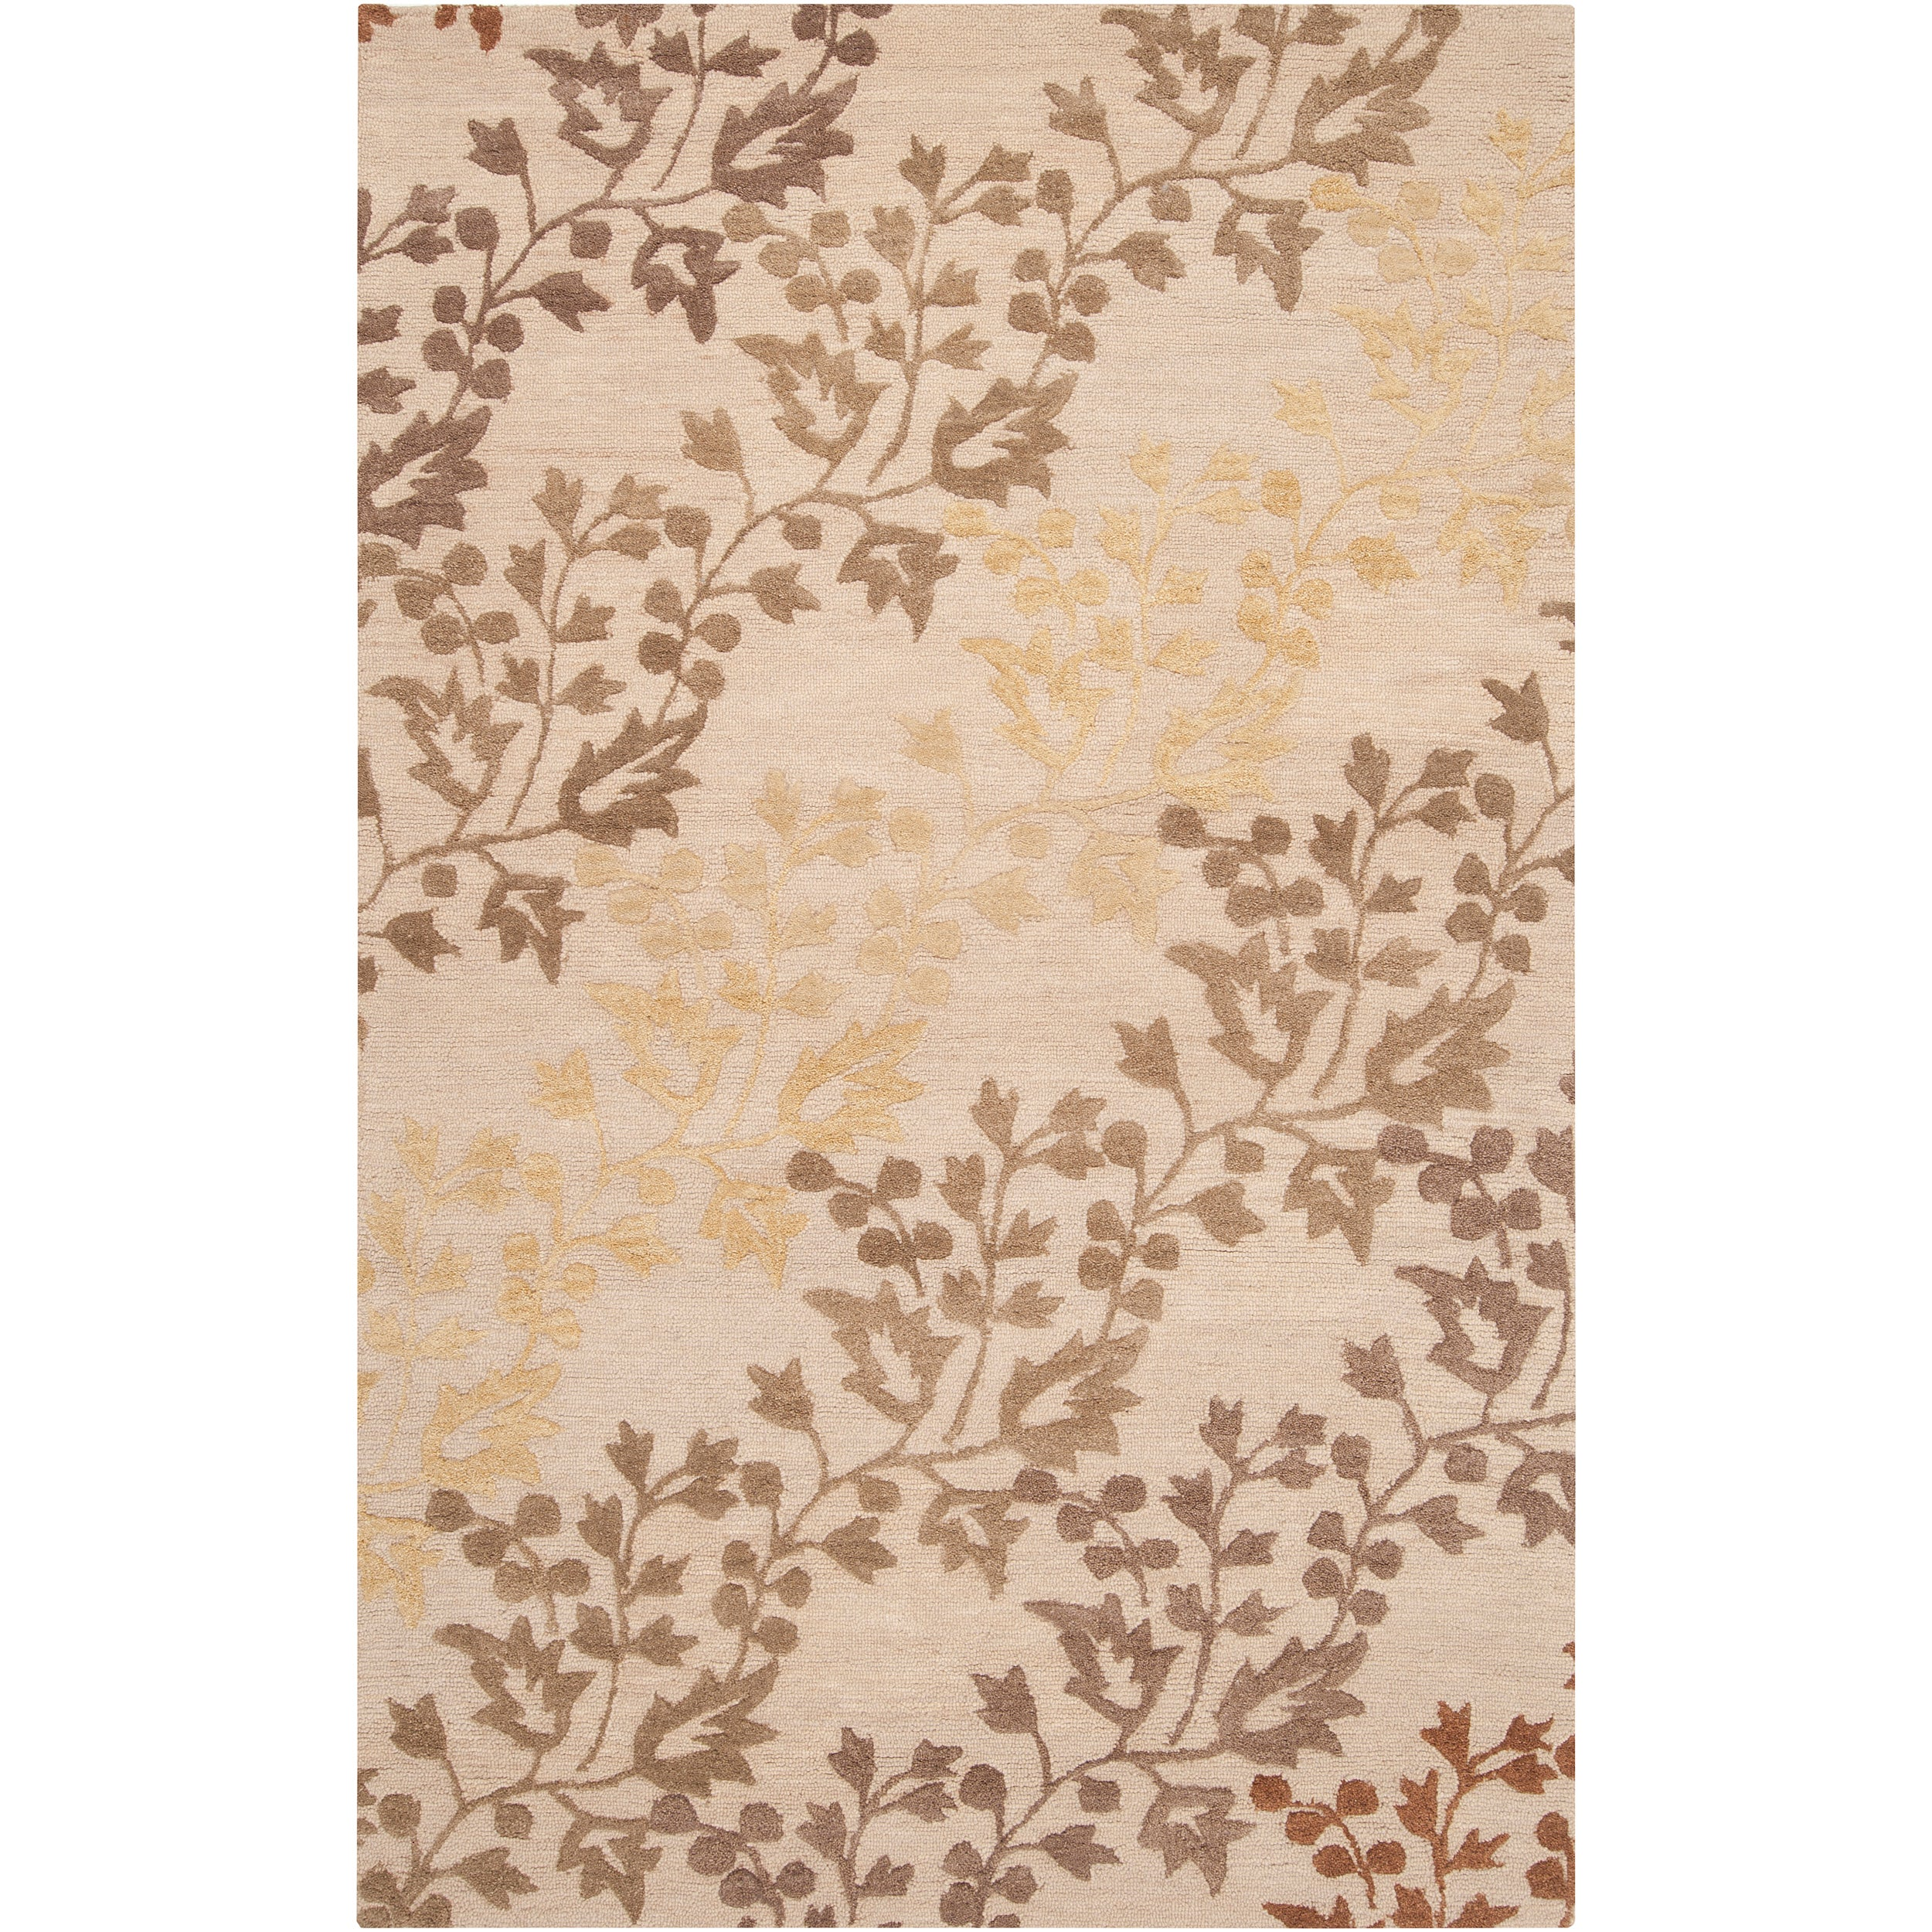 Hand-tufted Beige Belle Towers New Zealand Wool Rug (3'3 x 5'3)